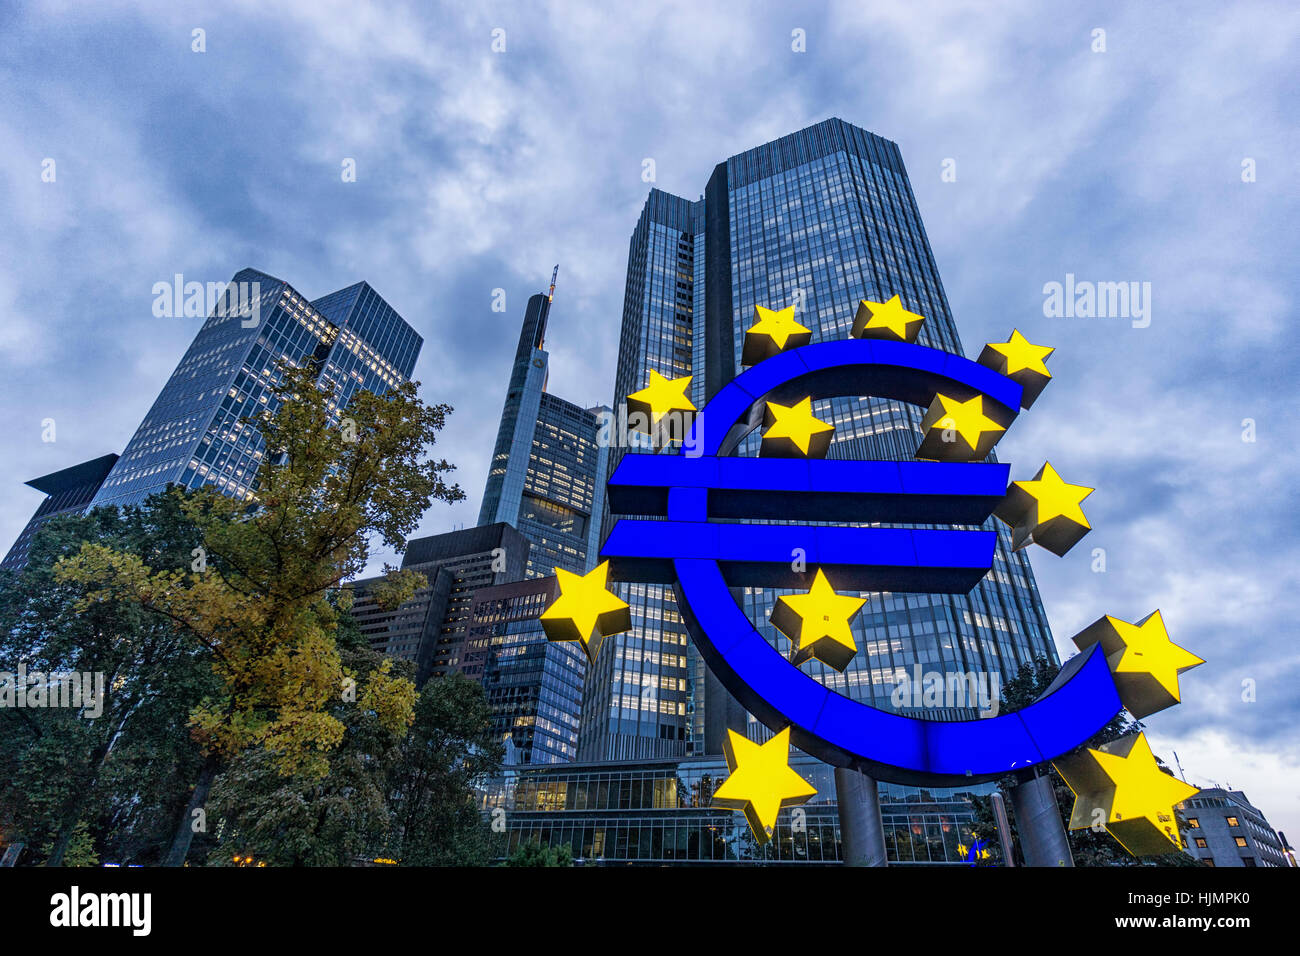 Germany, Hessen, Frankfurt-am-Main, Euro Tower, Euro Symbol, Willy Brandt Platz, skyline, Commerzbank, Stock Photo